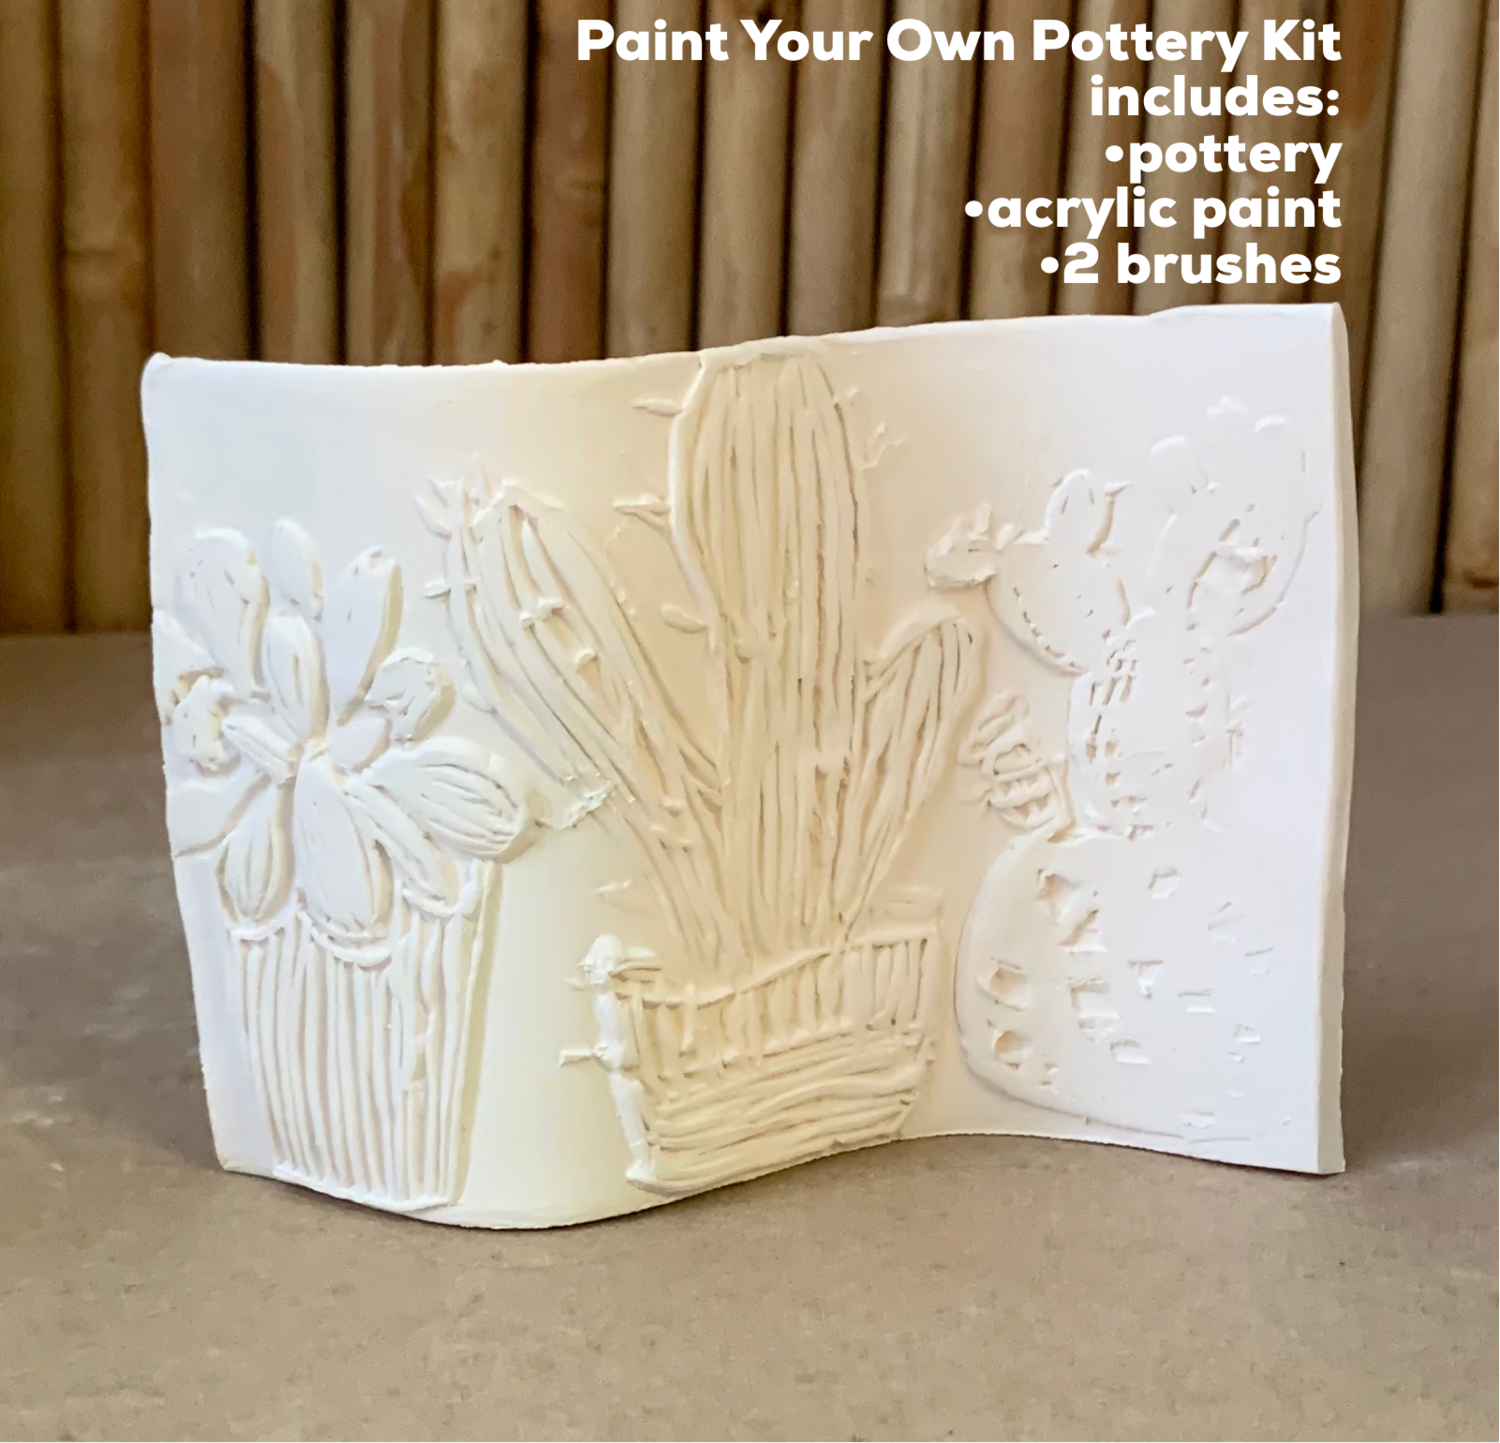 NO FIRE Paint Your Own Pottery Kit -  Ceramic Self Standing Cactus Succulent Tile Acrylic Painting Kit